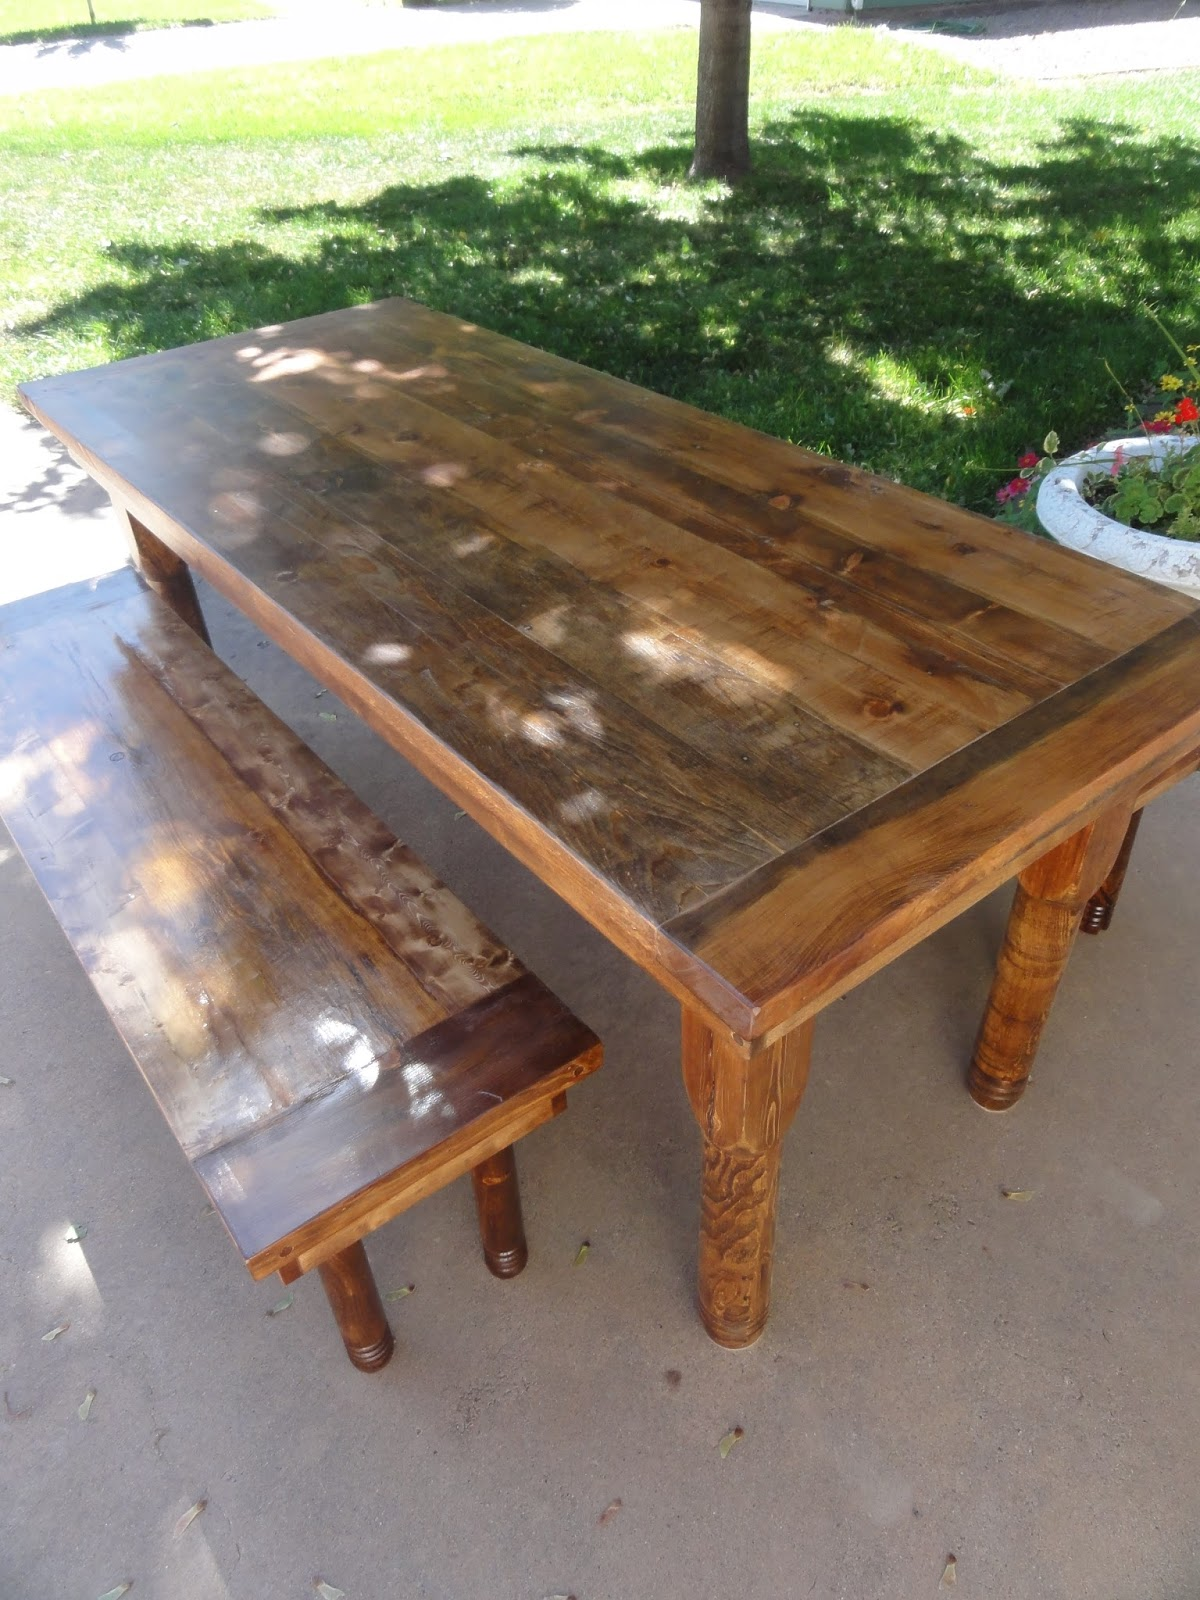 He Also Made This 7 Foot Table With Two Benches Out Of Salvaged Wood With  Lathe Turned Legs.